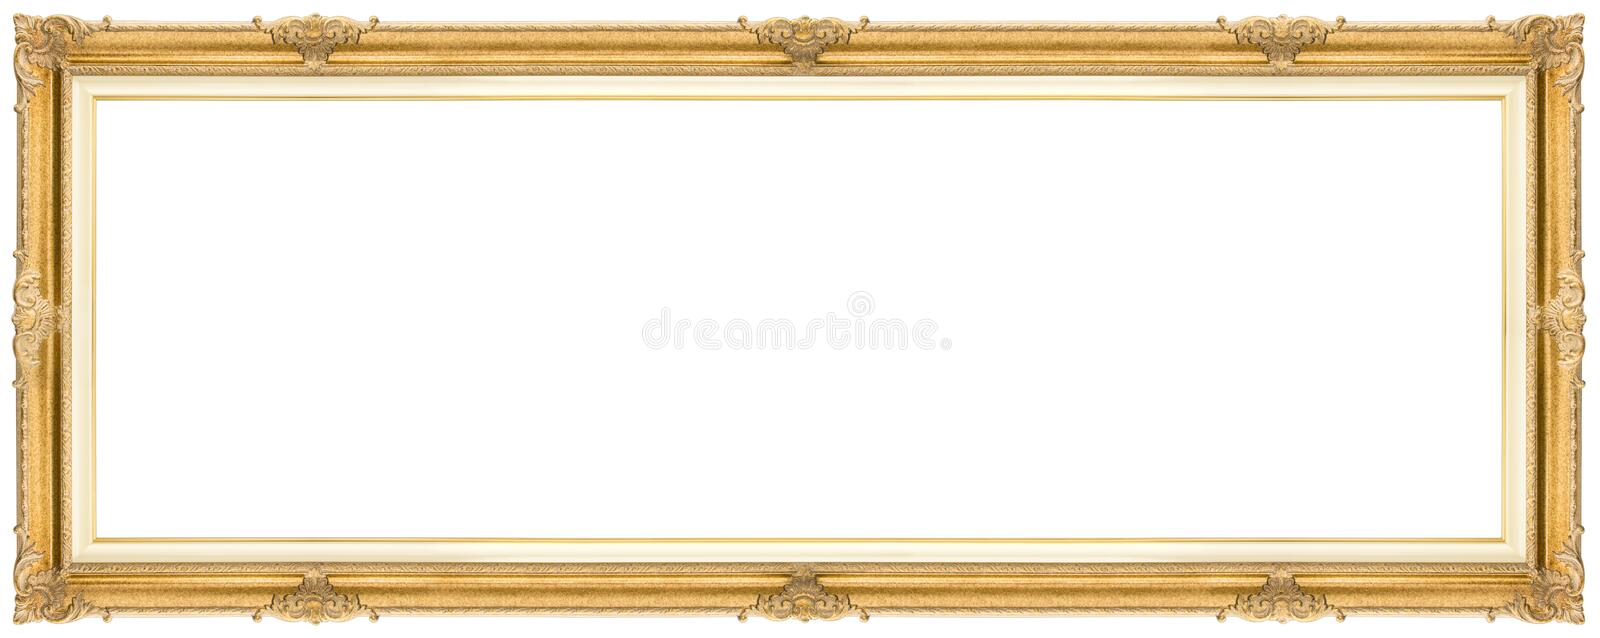 Wide Golden Frame royalty free stock photo